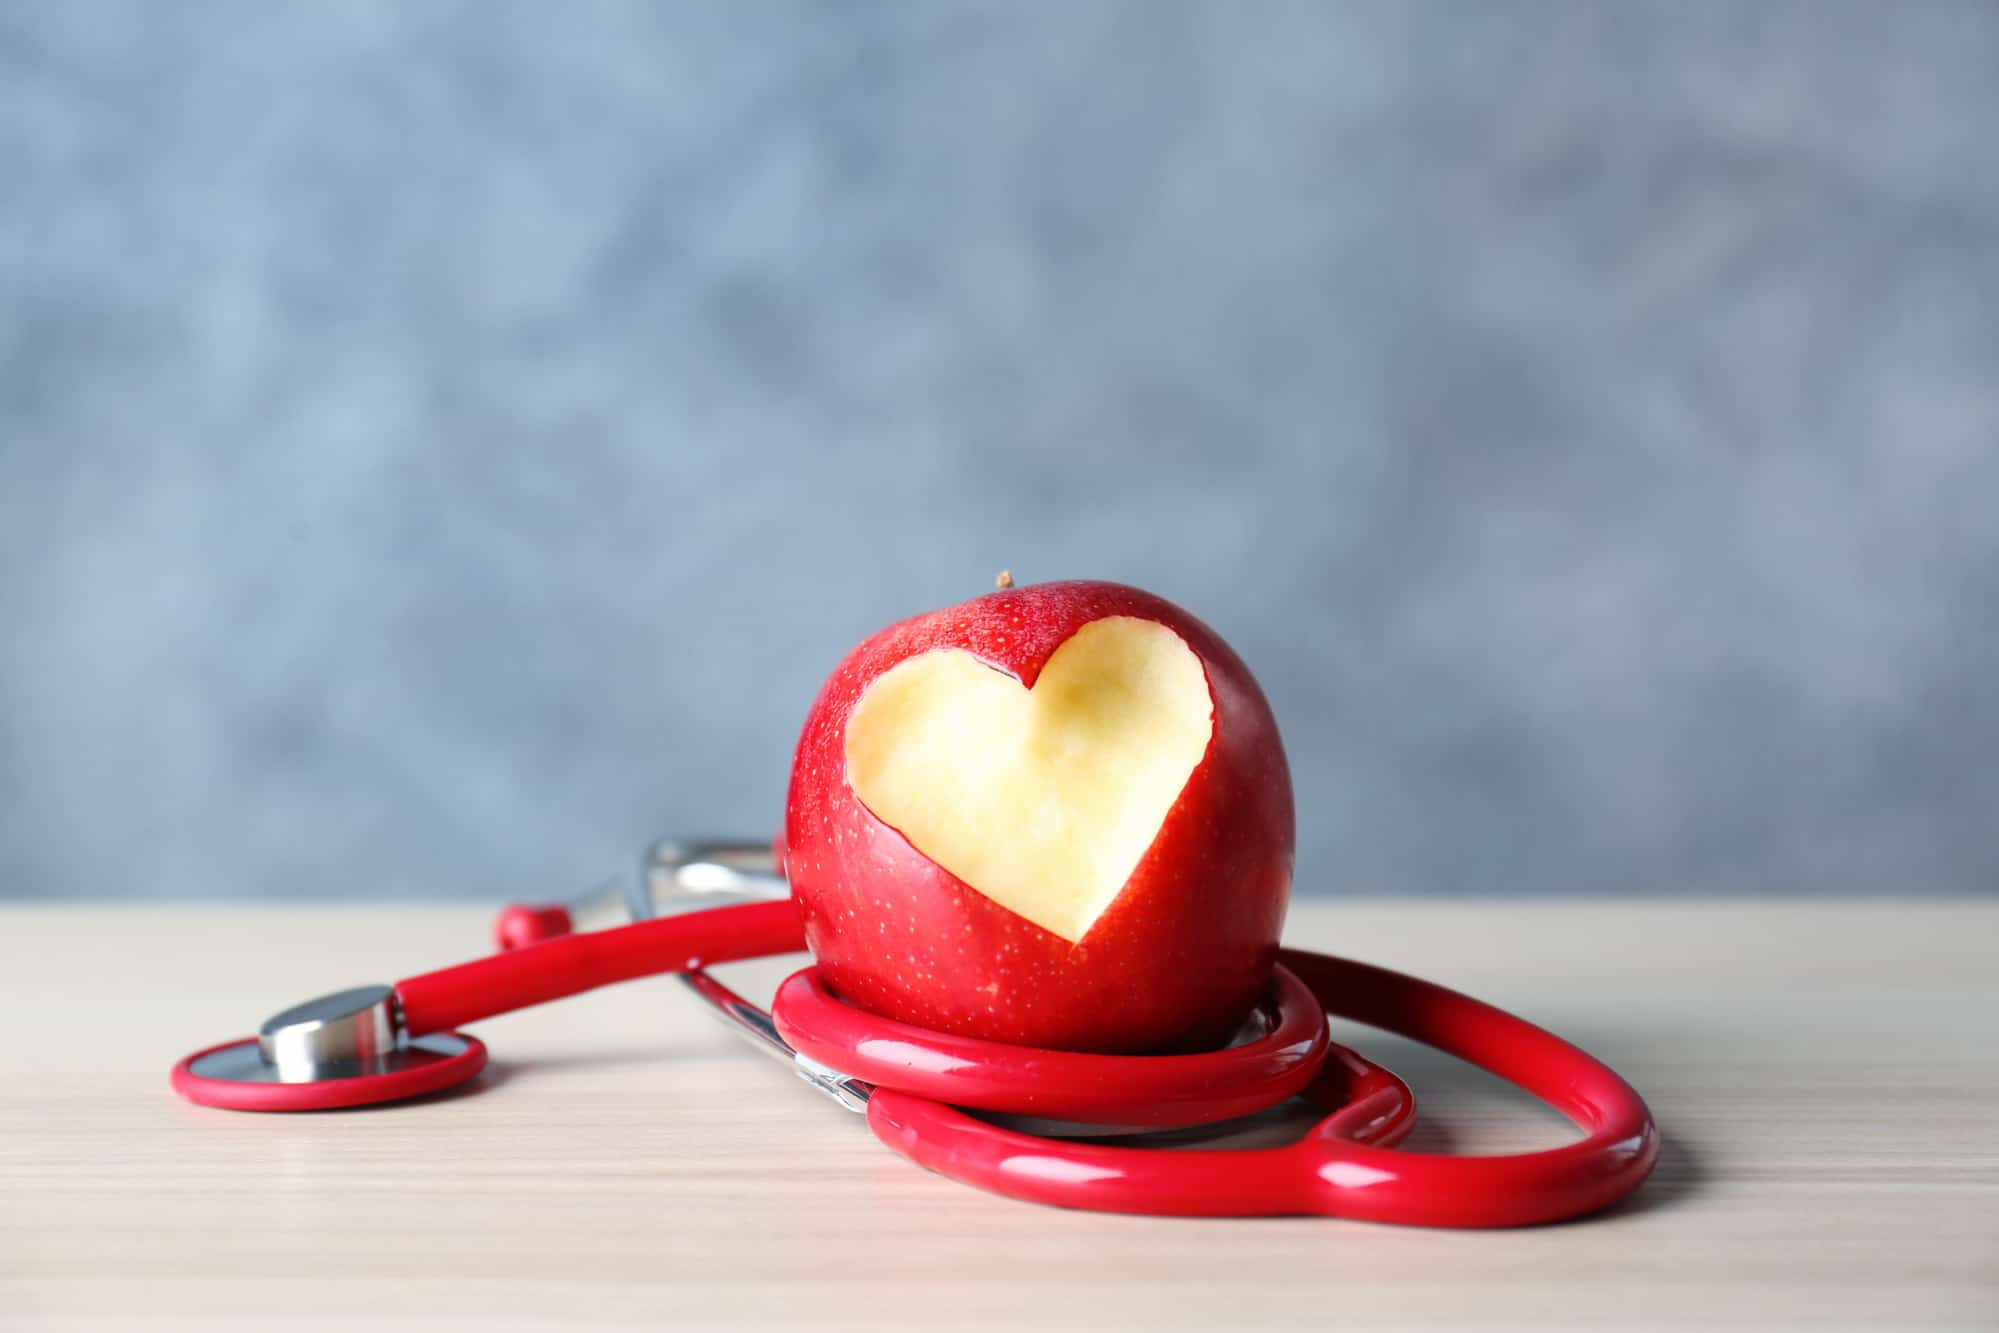 apple with stethoscope representing health